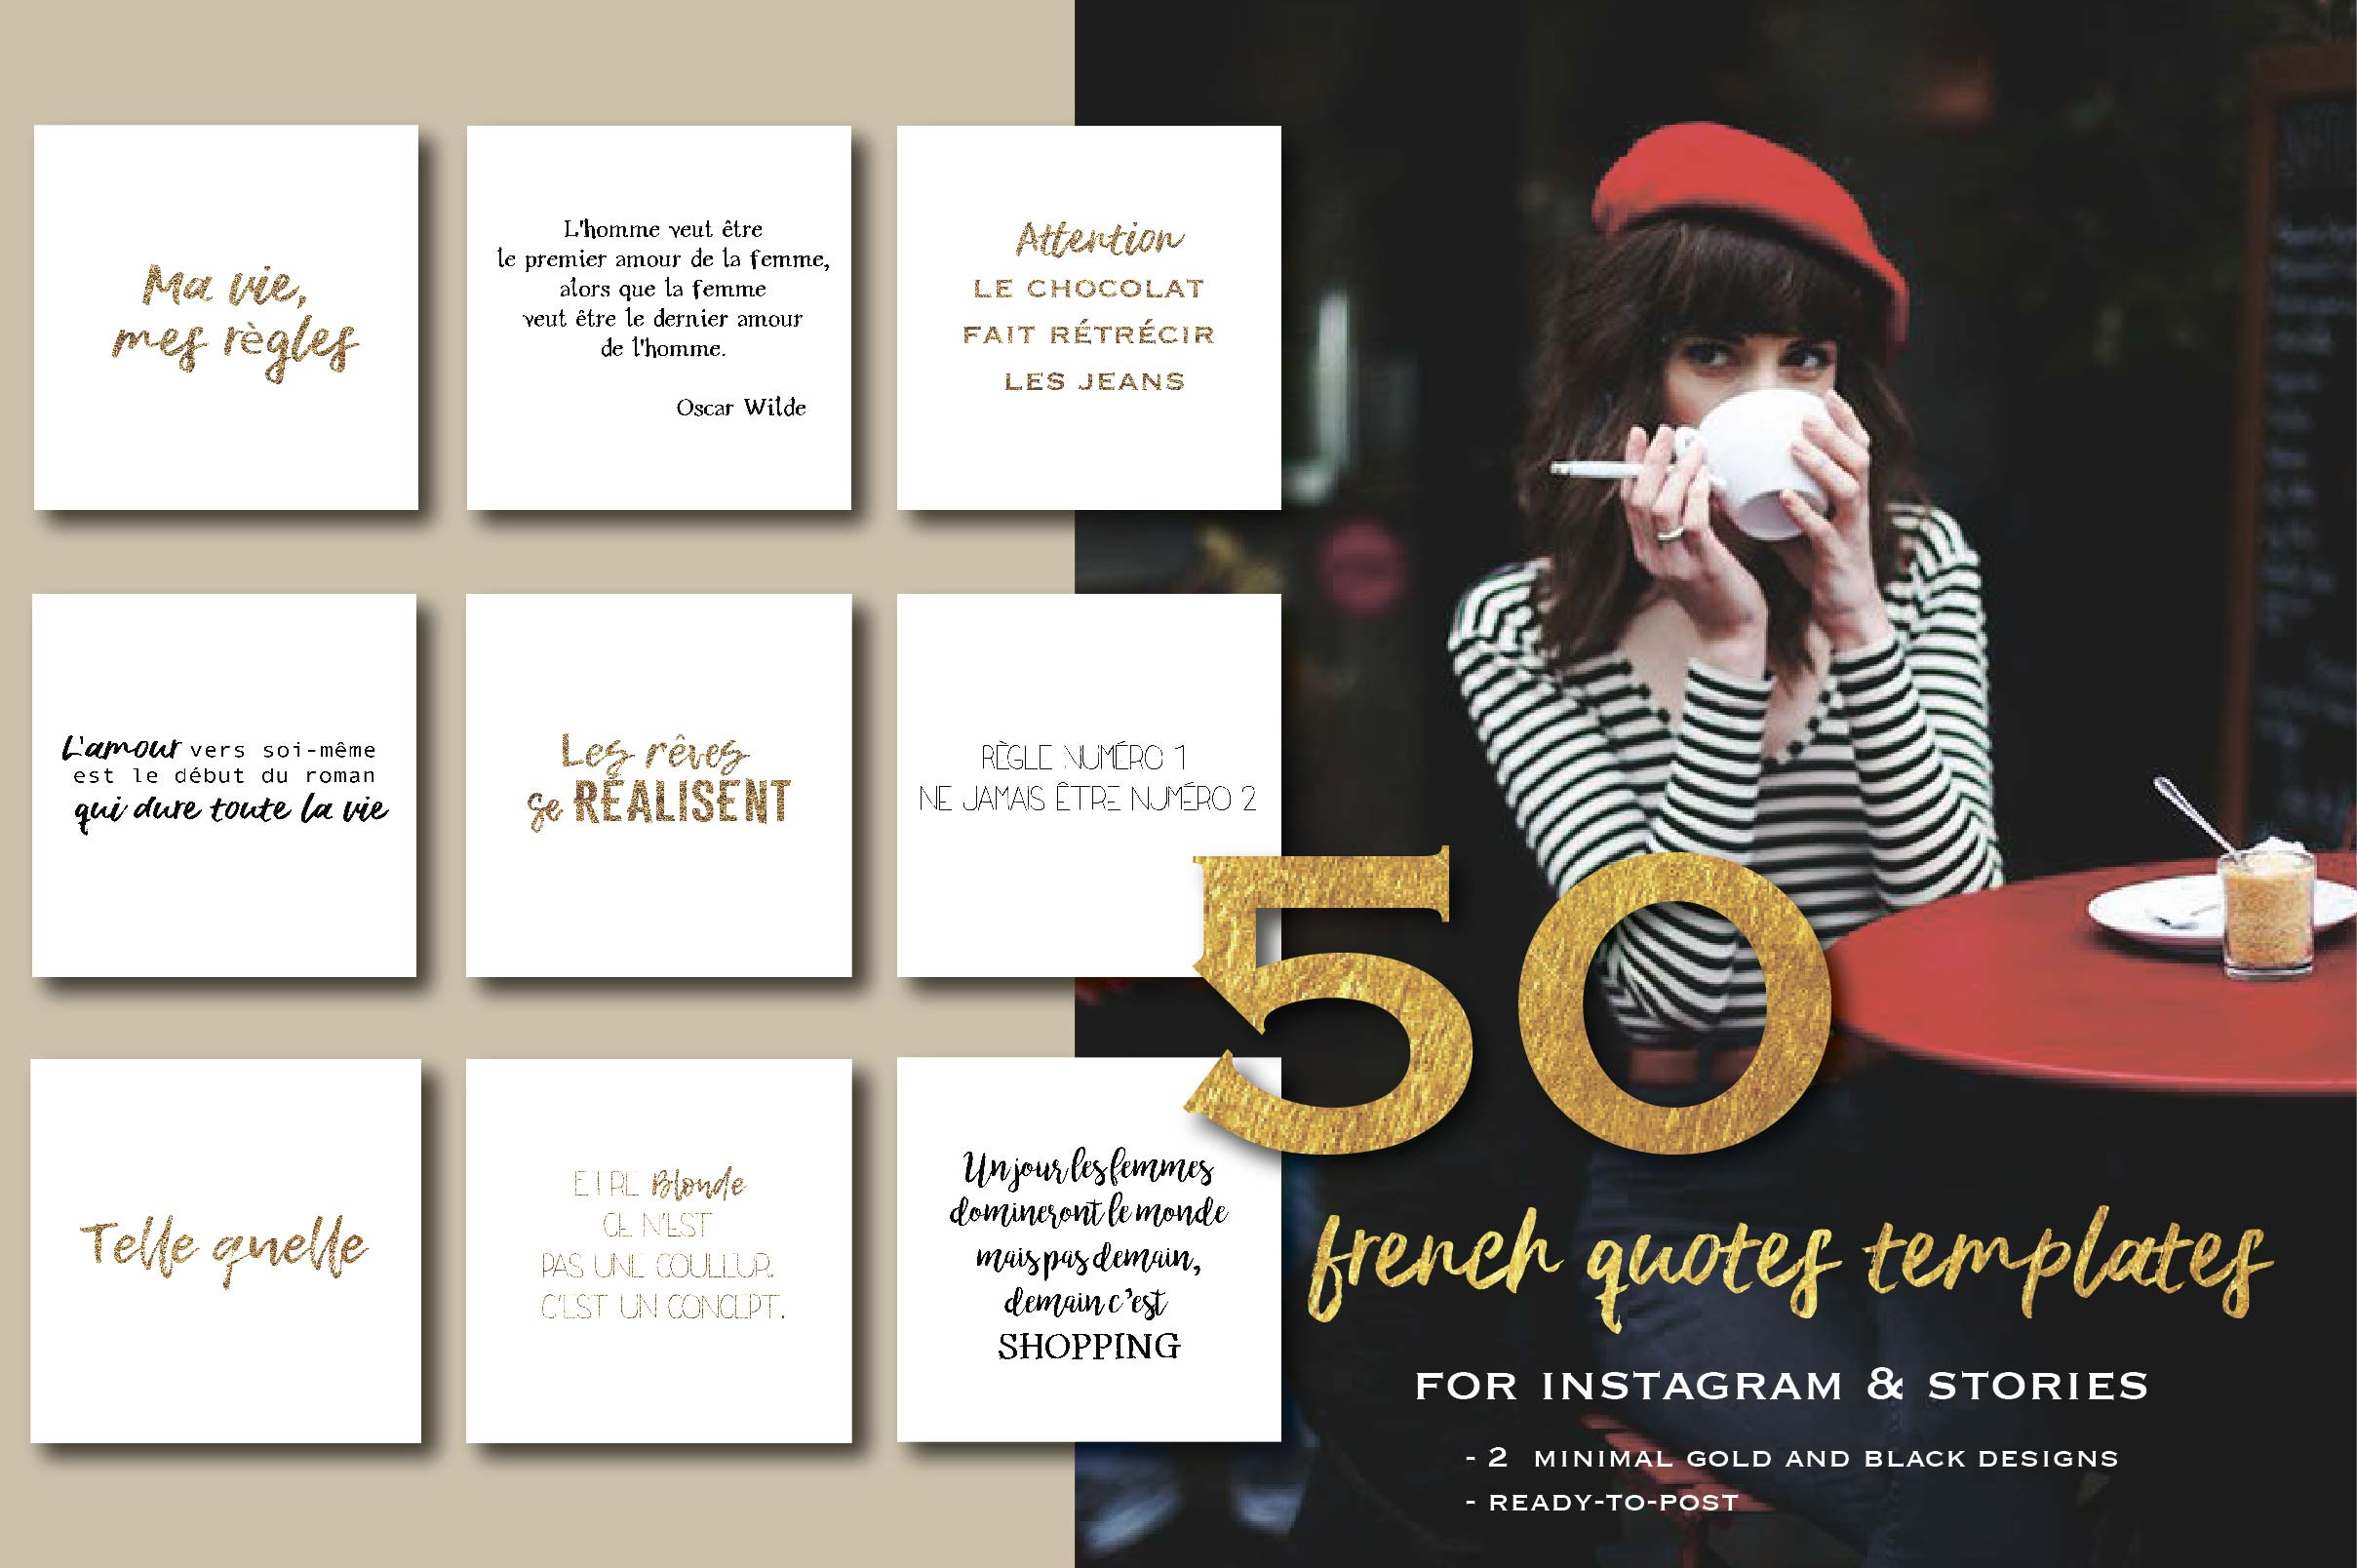 50 french quotes for instagram example image 1